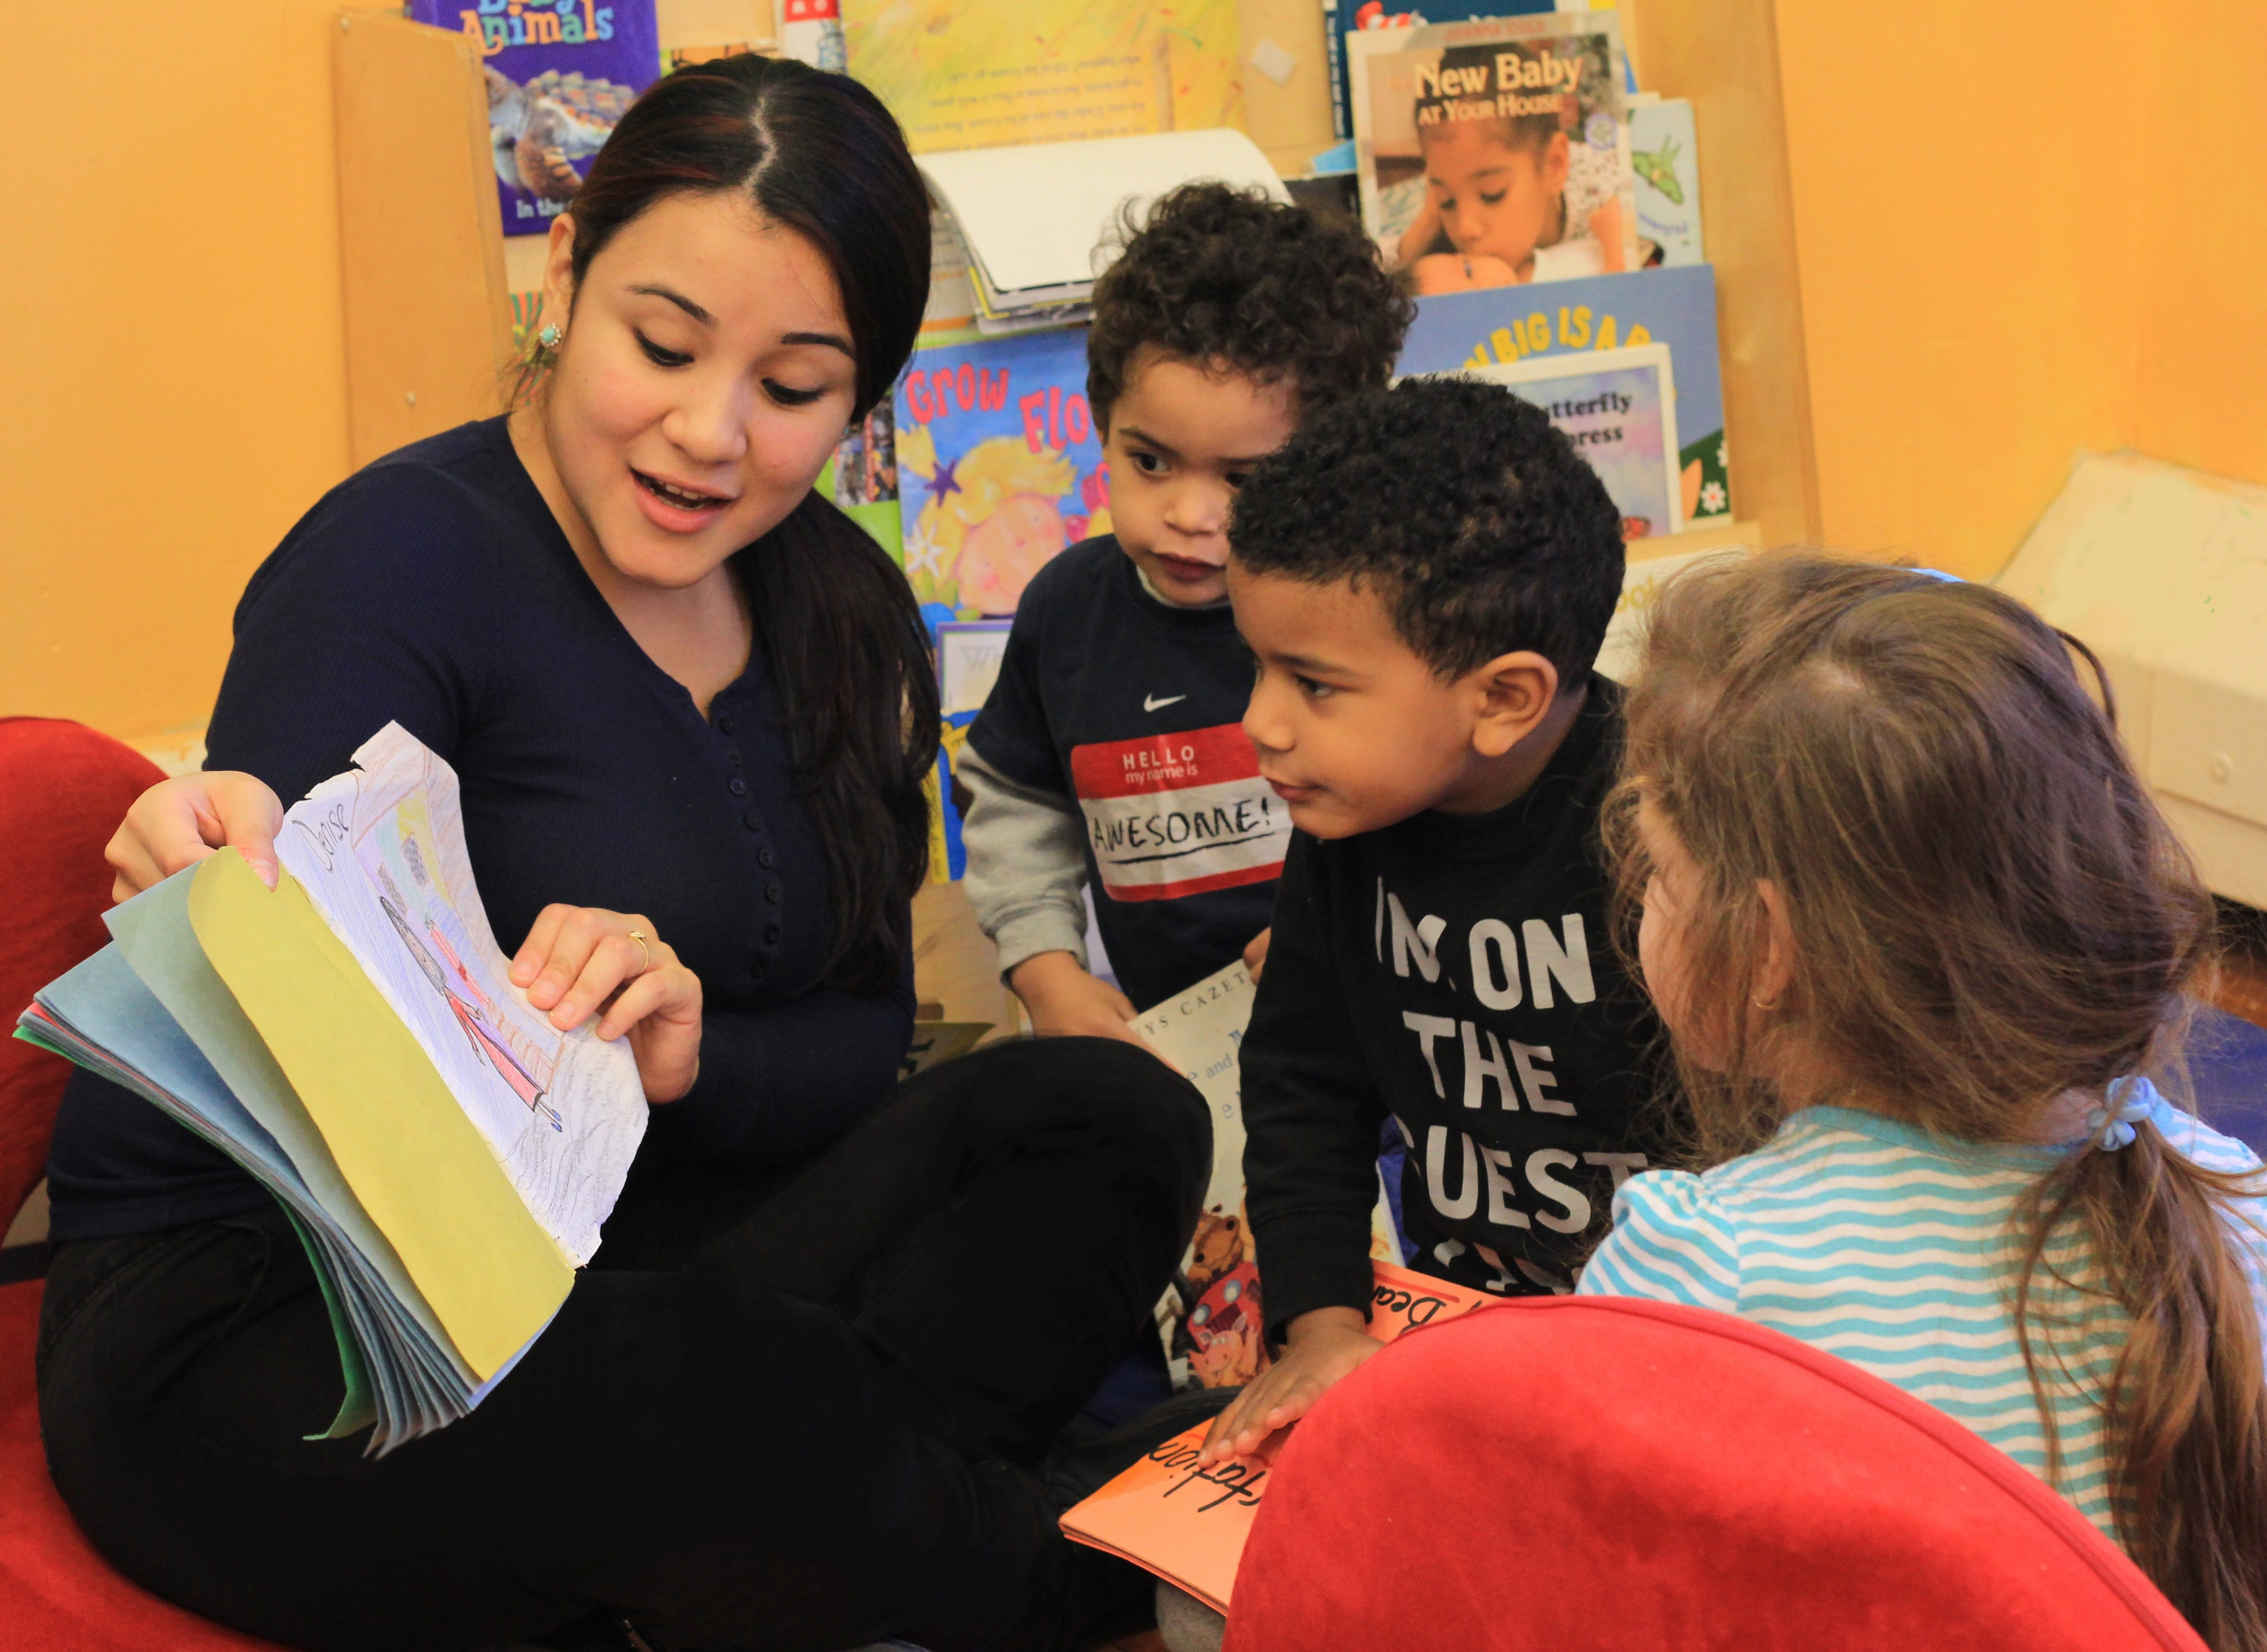 A teacher reads aloud with young children.